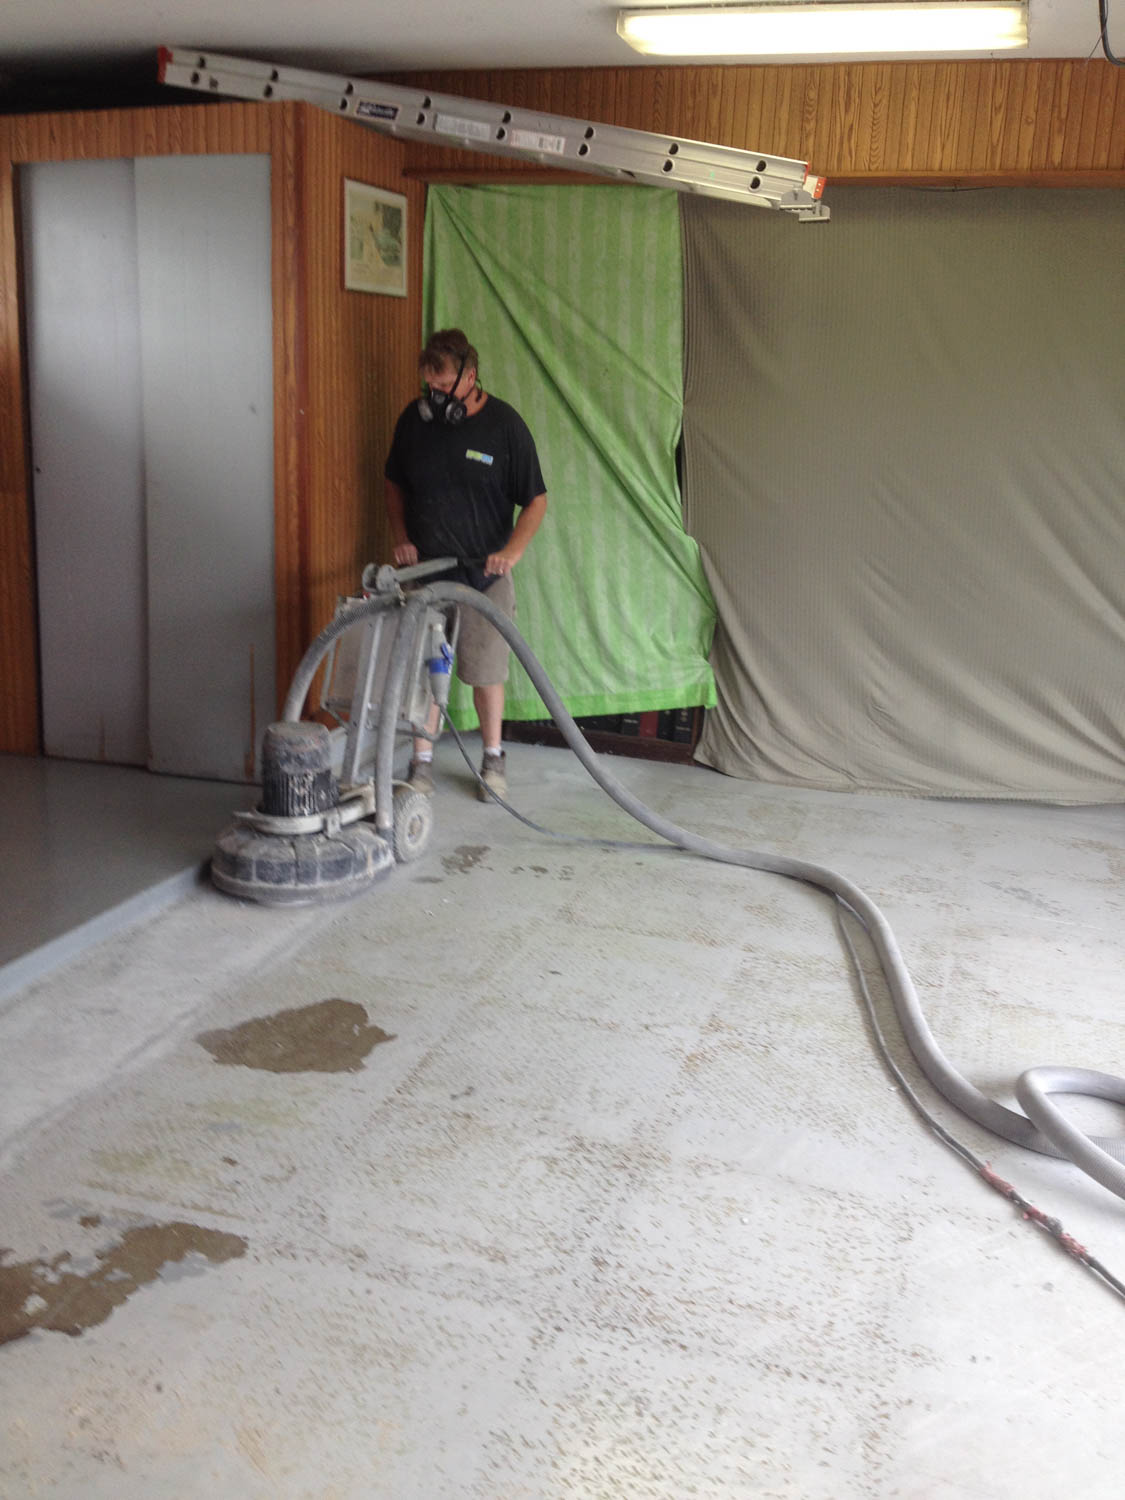 power washing the floor